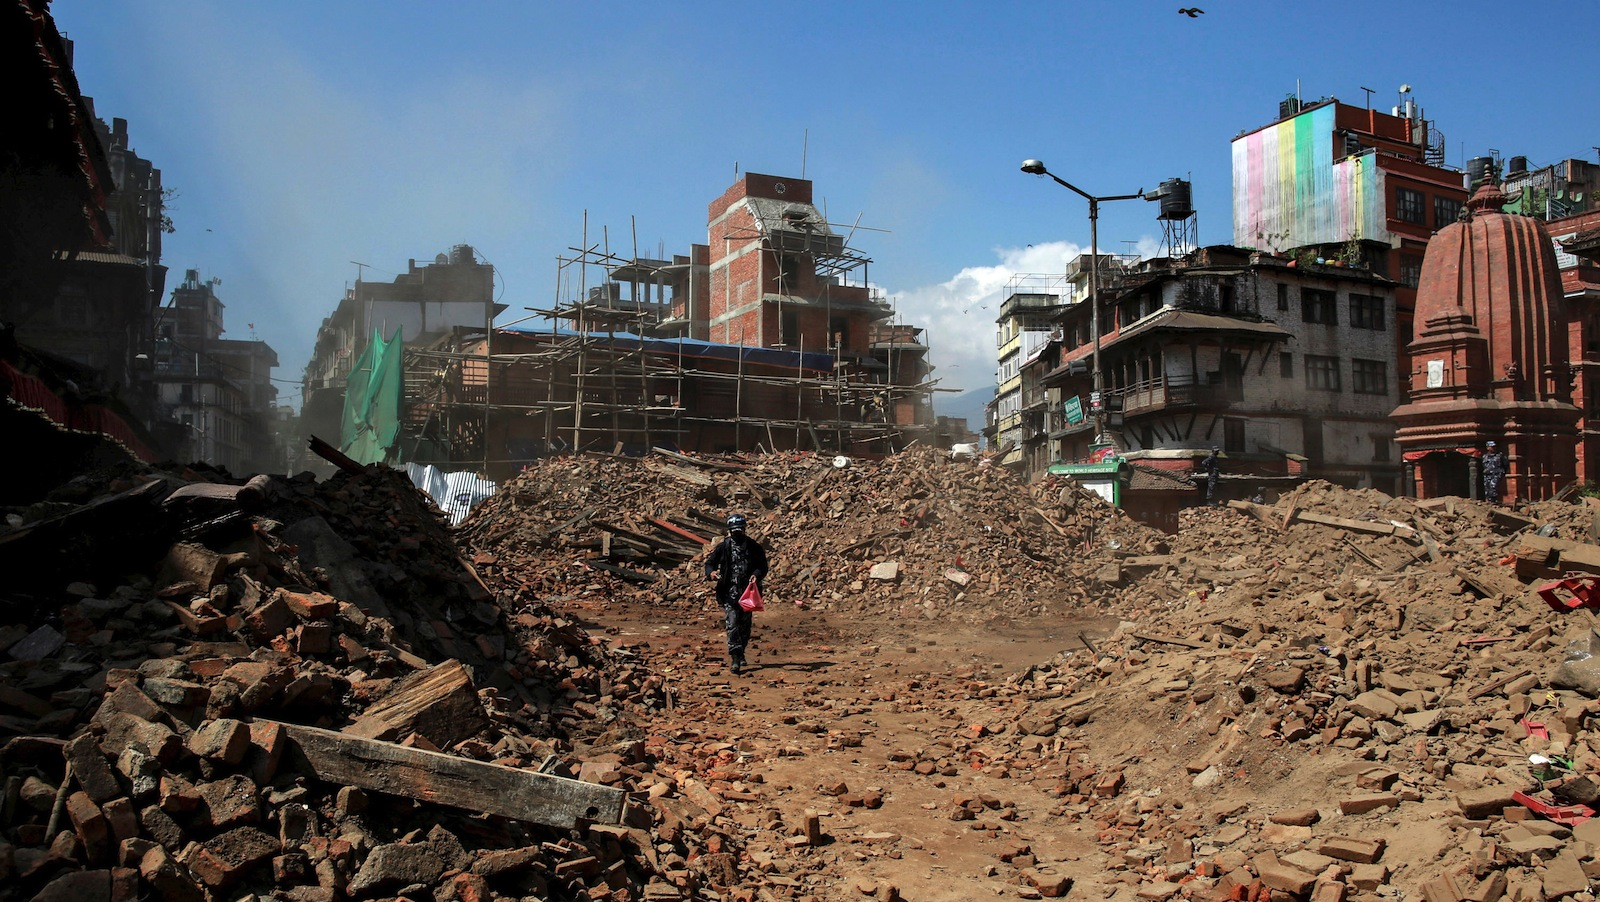 A member of Nepalese police personnel walks amidst the rubble of collapsed buildings, in the aftermath of Saturday's earthquake in Kathmandu, Nepal, April 27, 2015.